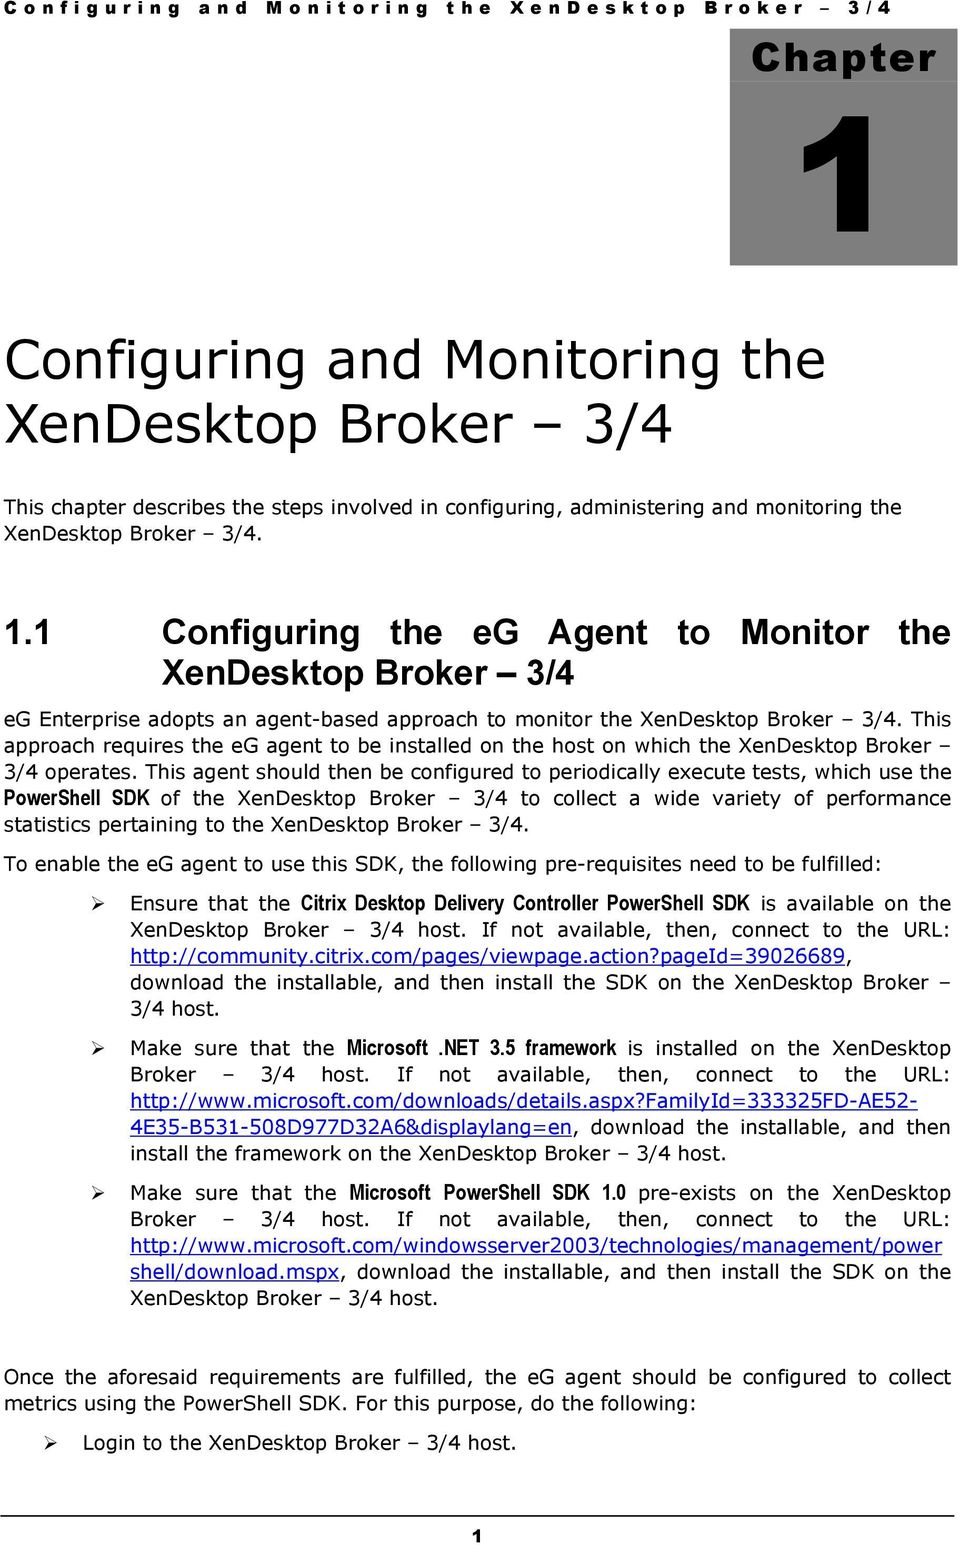 This approach requires the eg agent to be installed on the host on which the XenDesktop Broker 3/4 operates.